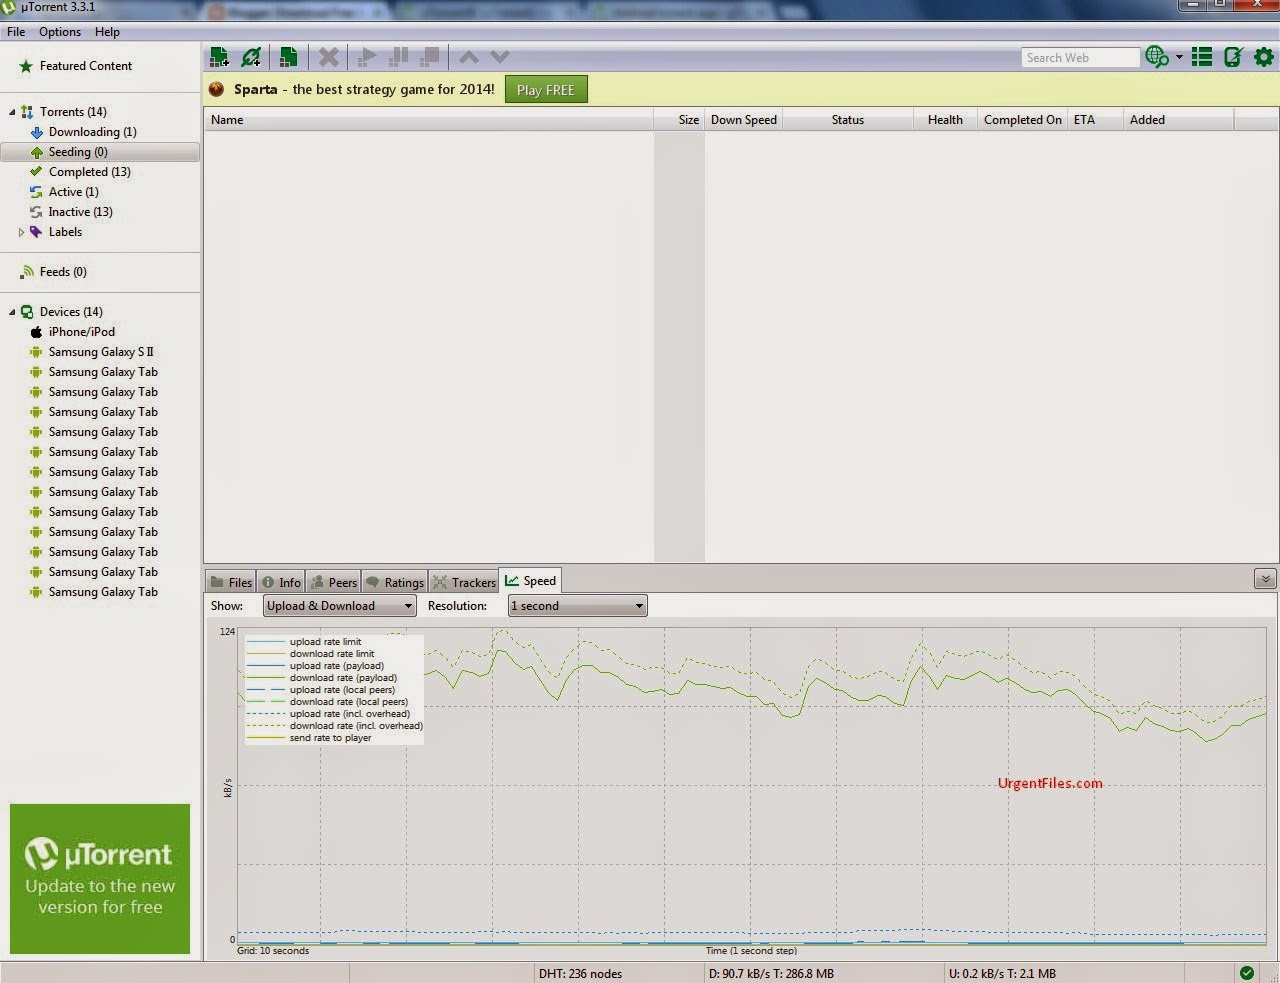 uTorrent display screen